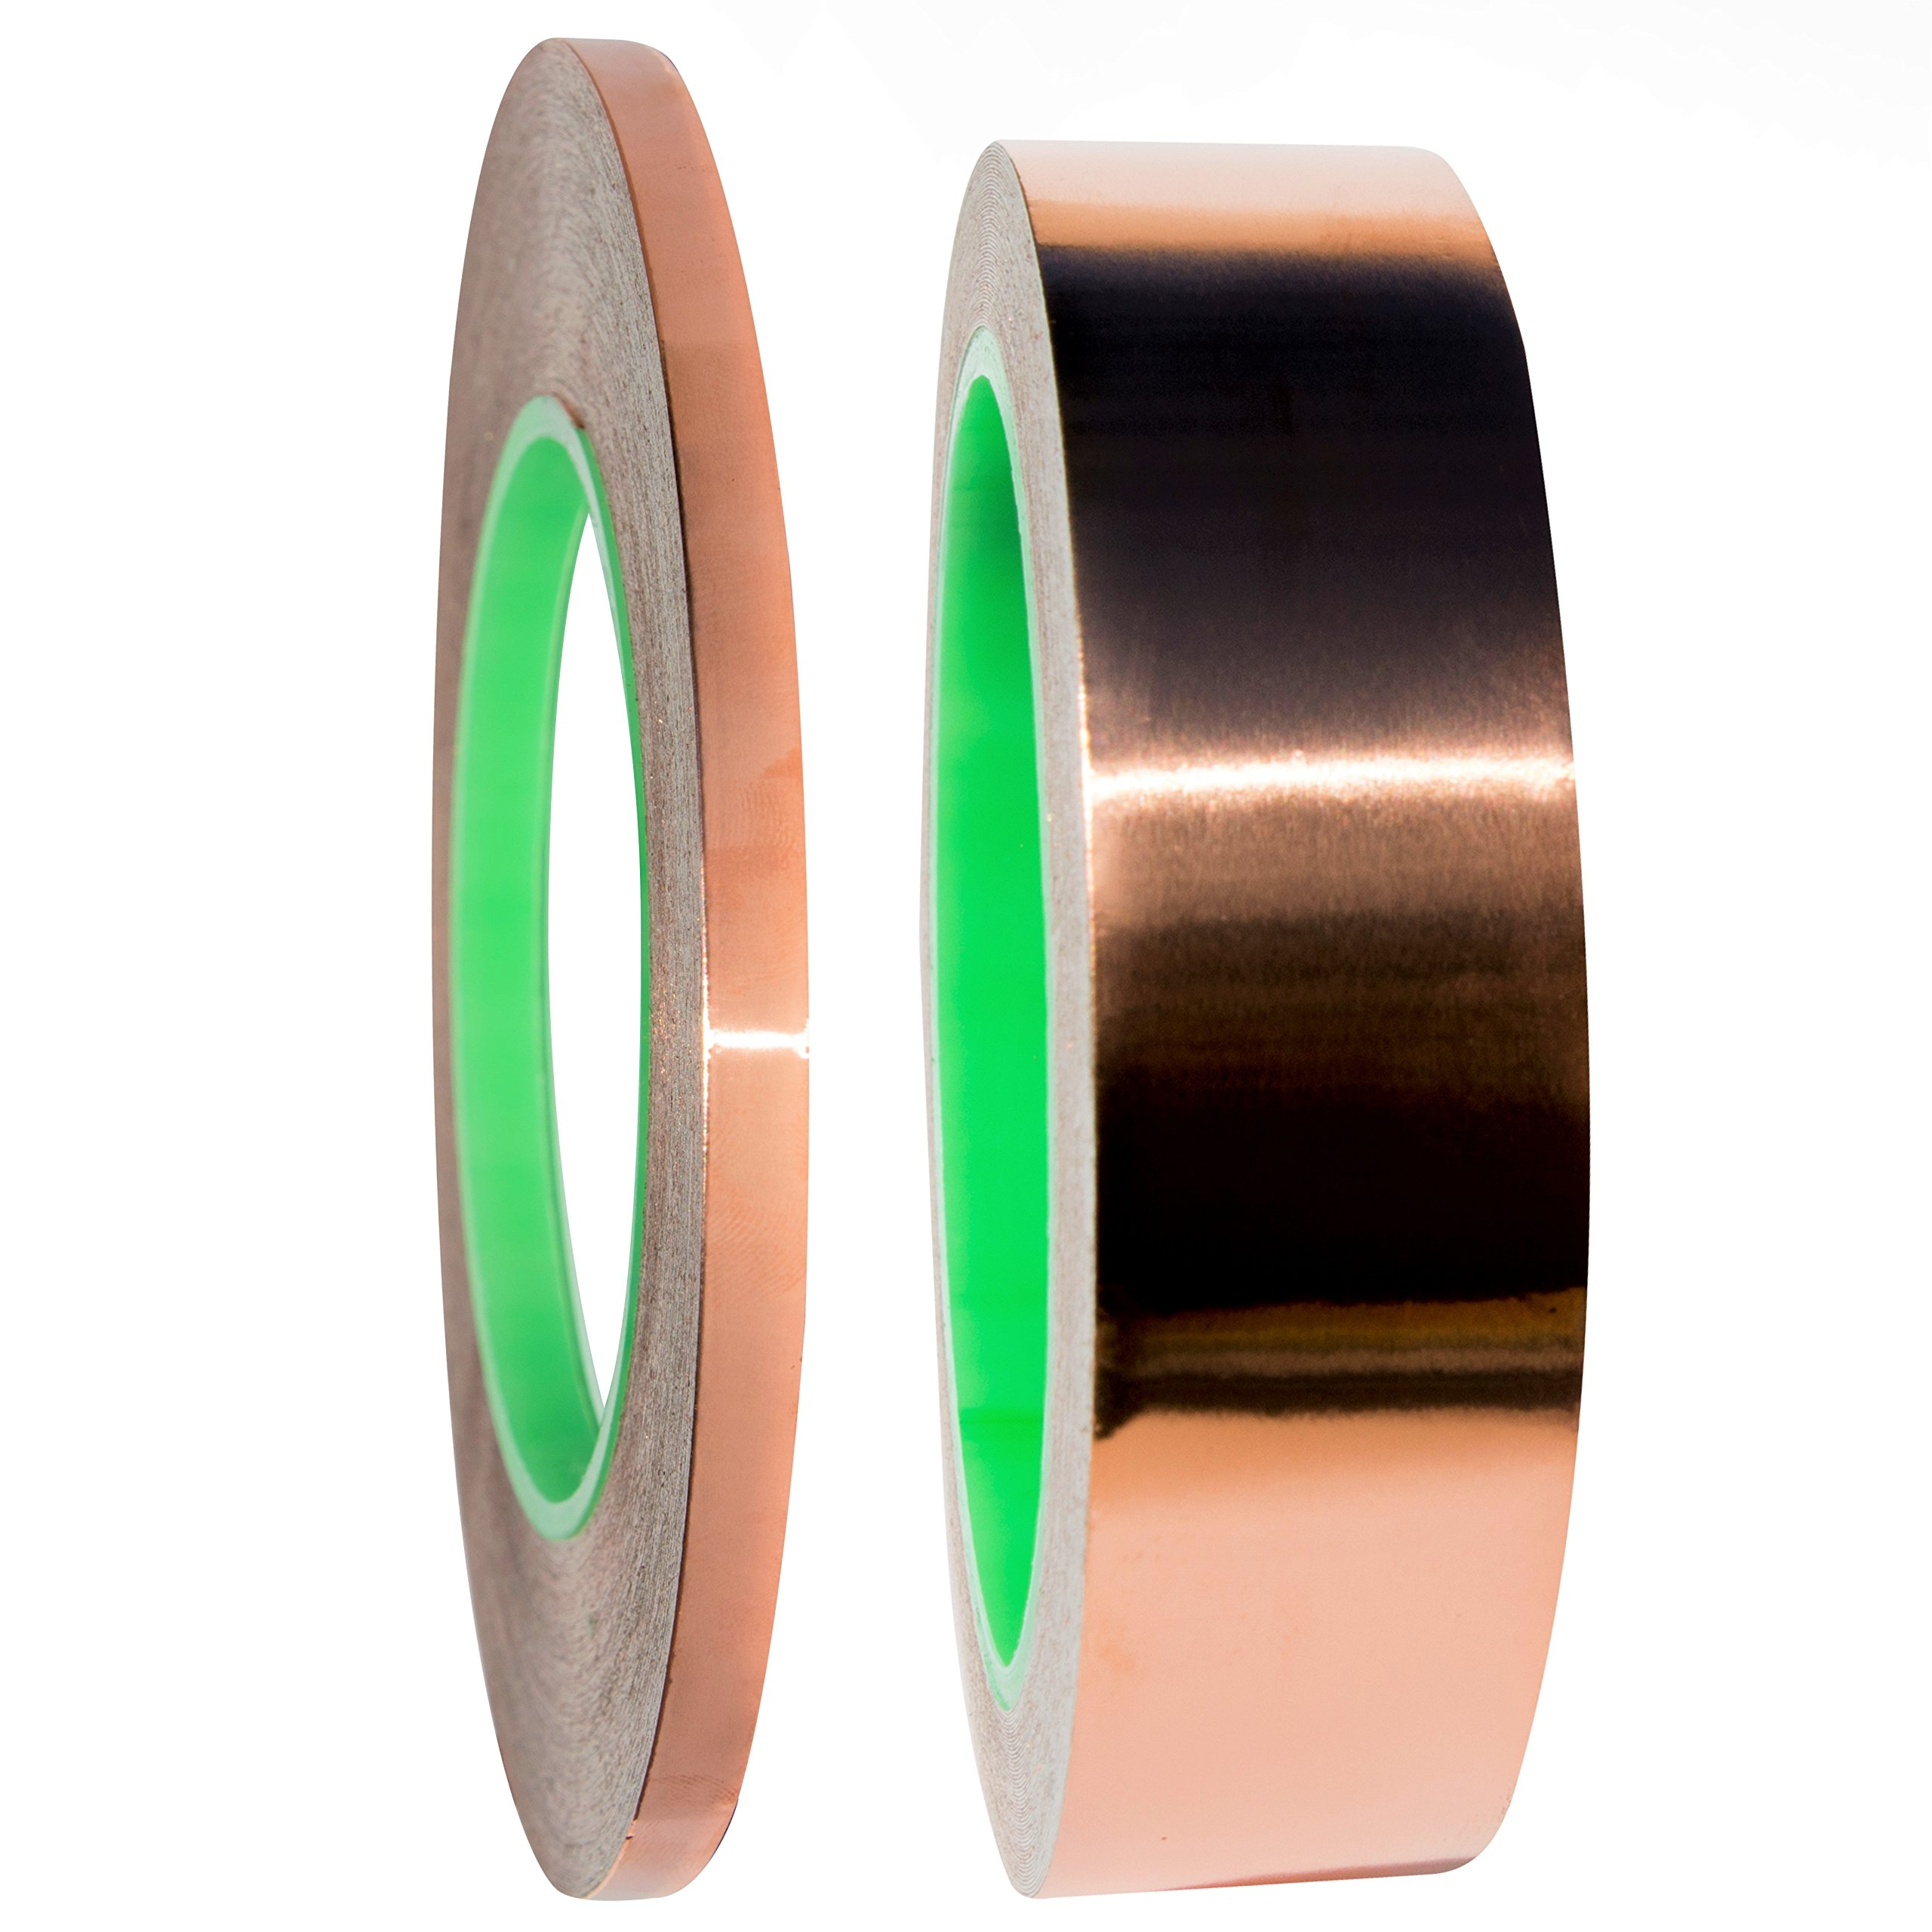 Freely Copper Foil Tape with Conductive Adhesive - 2 Pack (1Inch x 45ft & 1